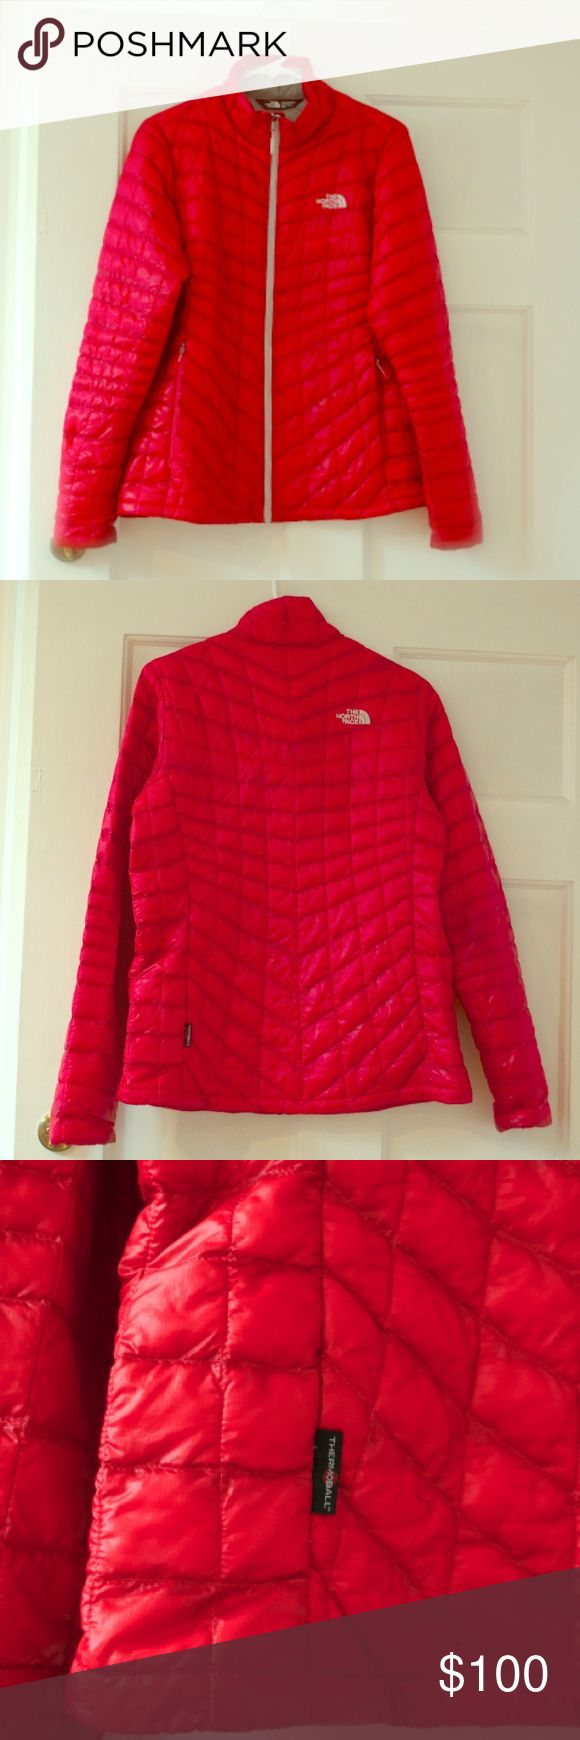 Women's medium bright red jacket SALE‼️ It great condition. Selling because I buy new stuff all the time. No low-blows or BS-- will be ignored. Thanks, happy poshing ❤️‼️ North Face Jackets & Coats